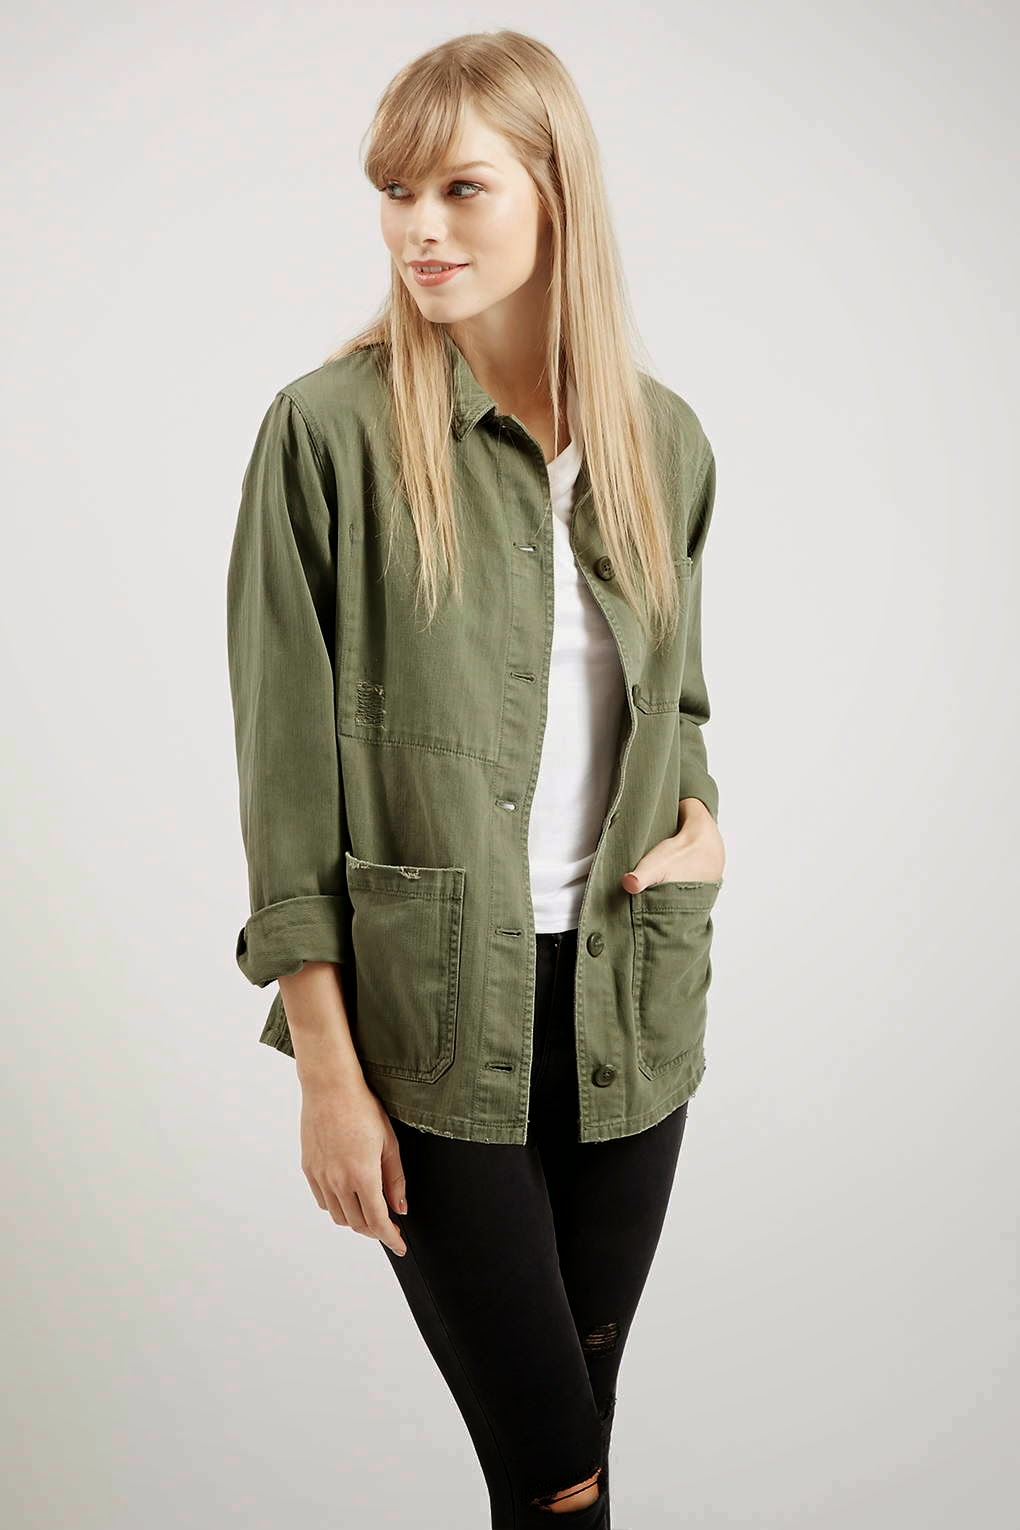 Khaki Military Shirt Jackets | A Stylish Something